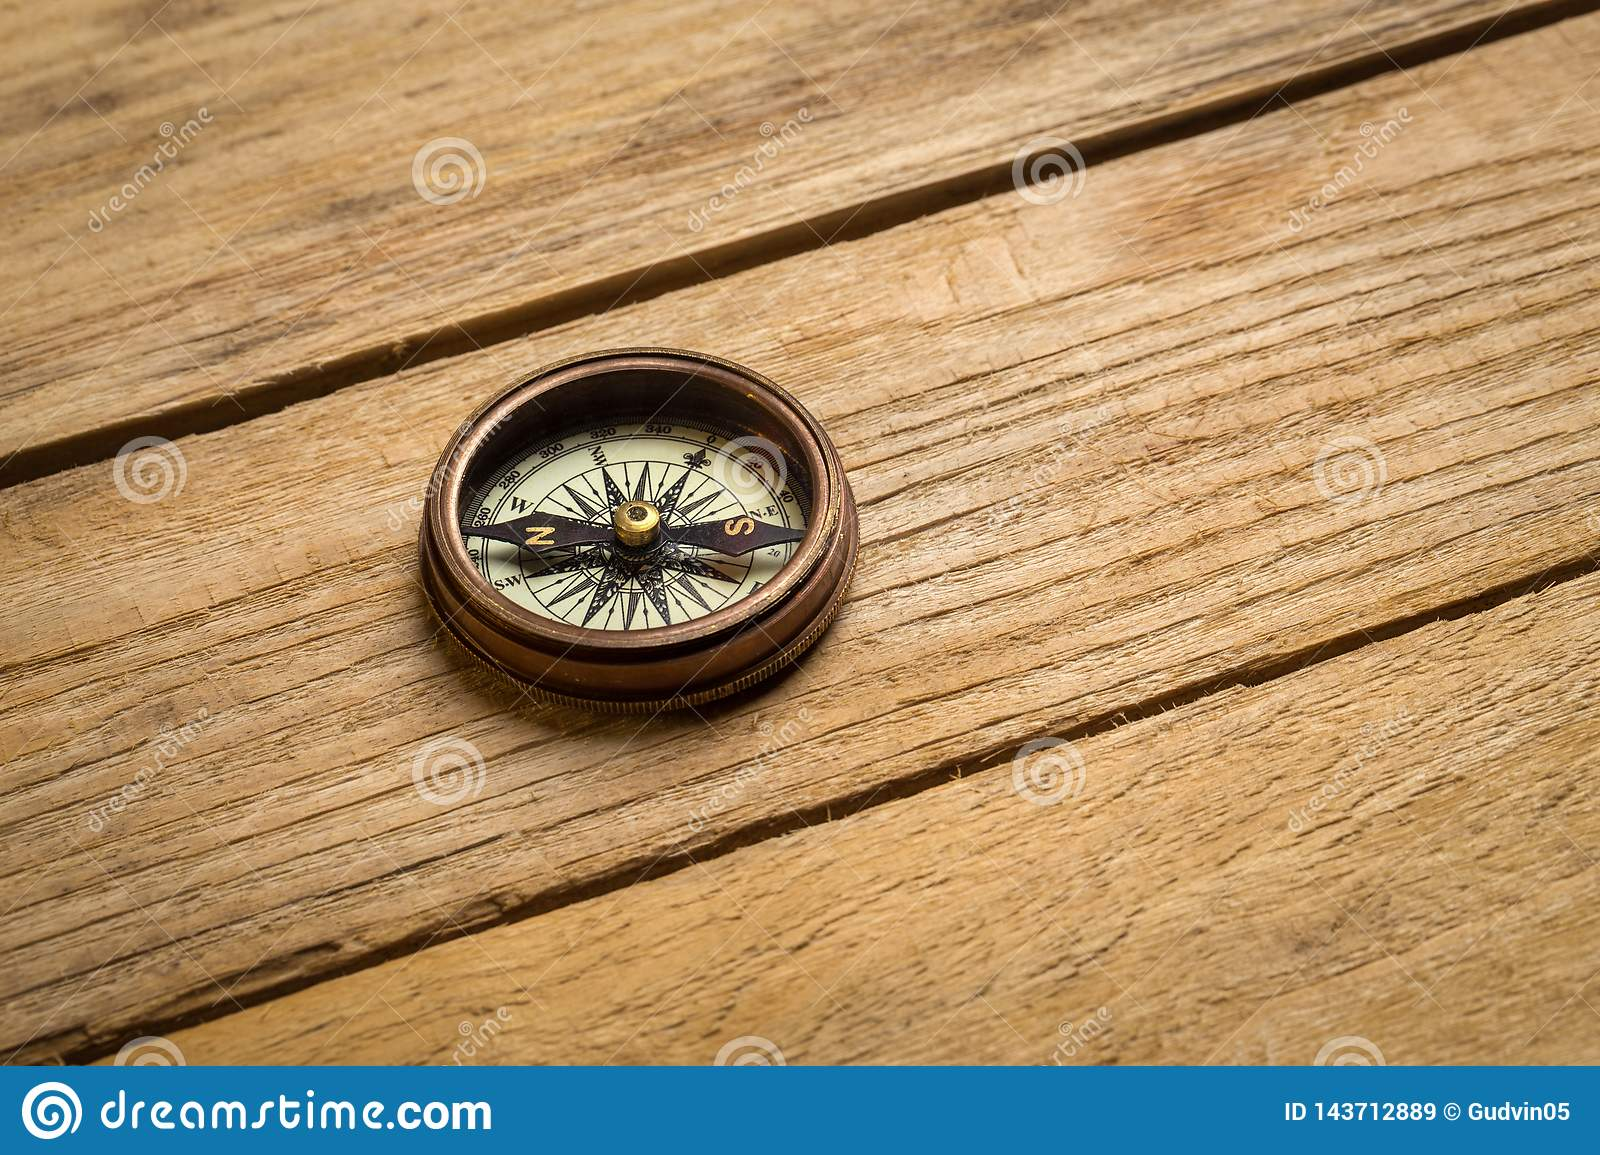 Old vintage compass on the table. Concept of travel